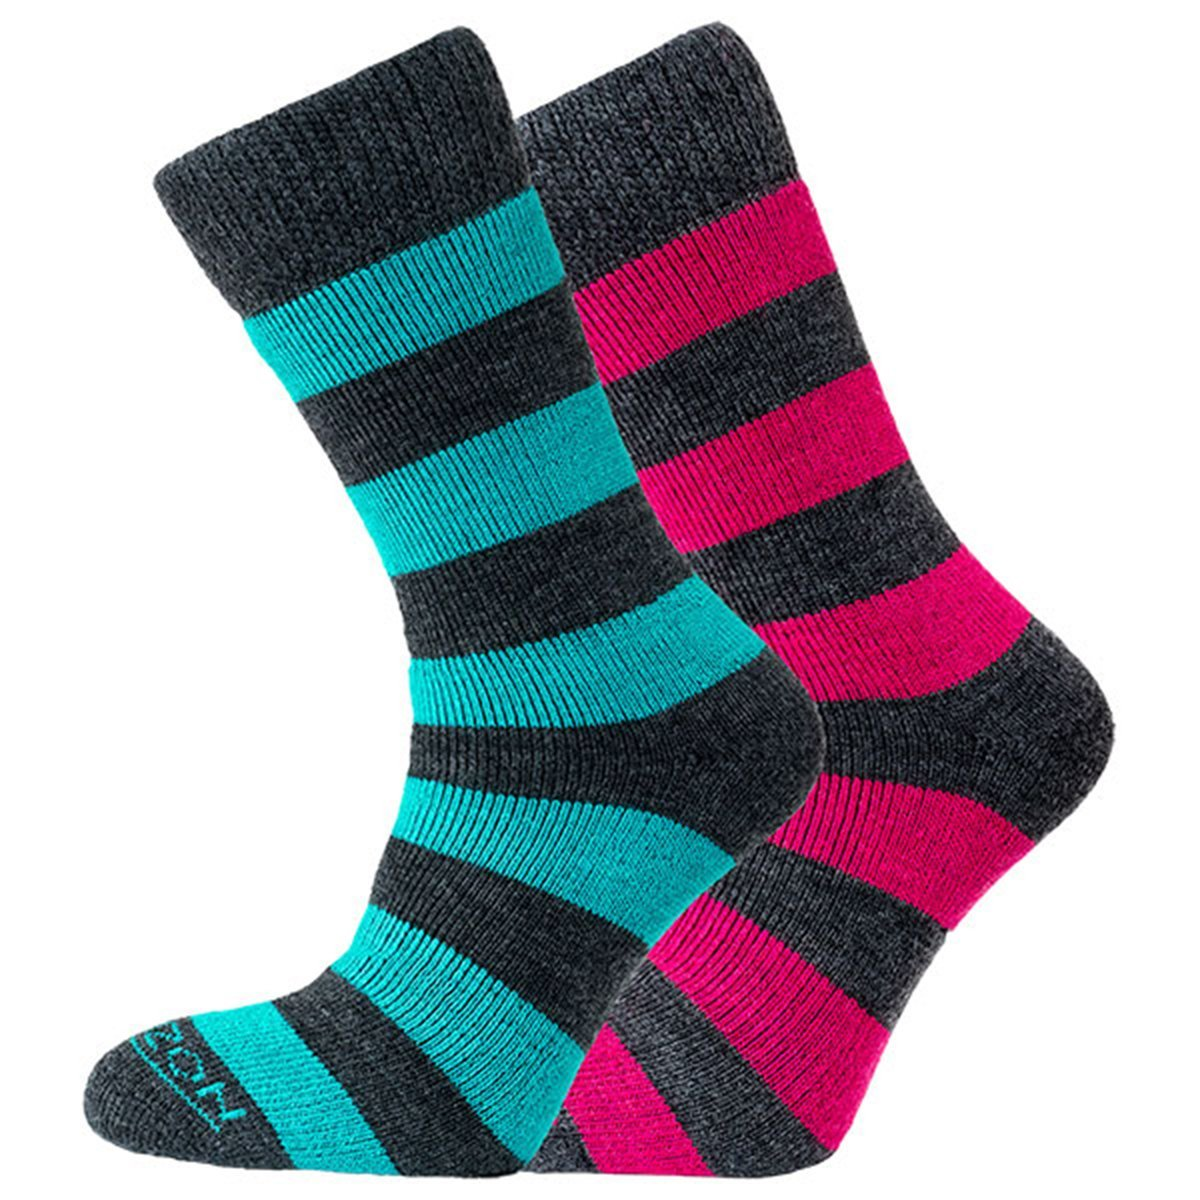 Horizon Socks » Heritage Merino Outoor Socks | Womens 2 Pack | Charcoal Teal & Cerise